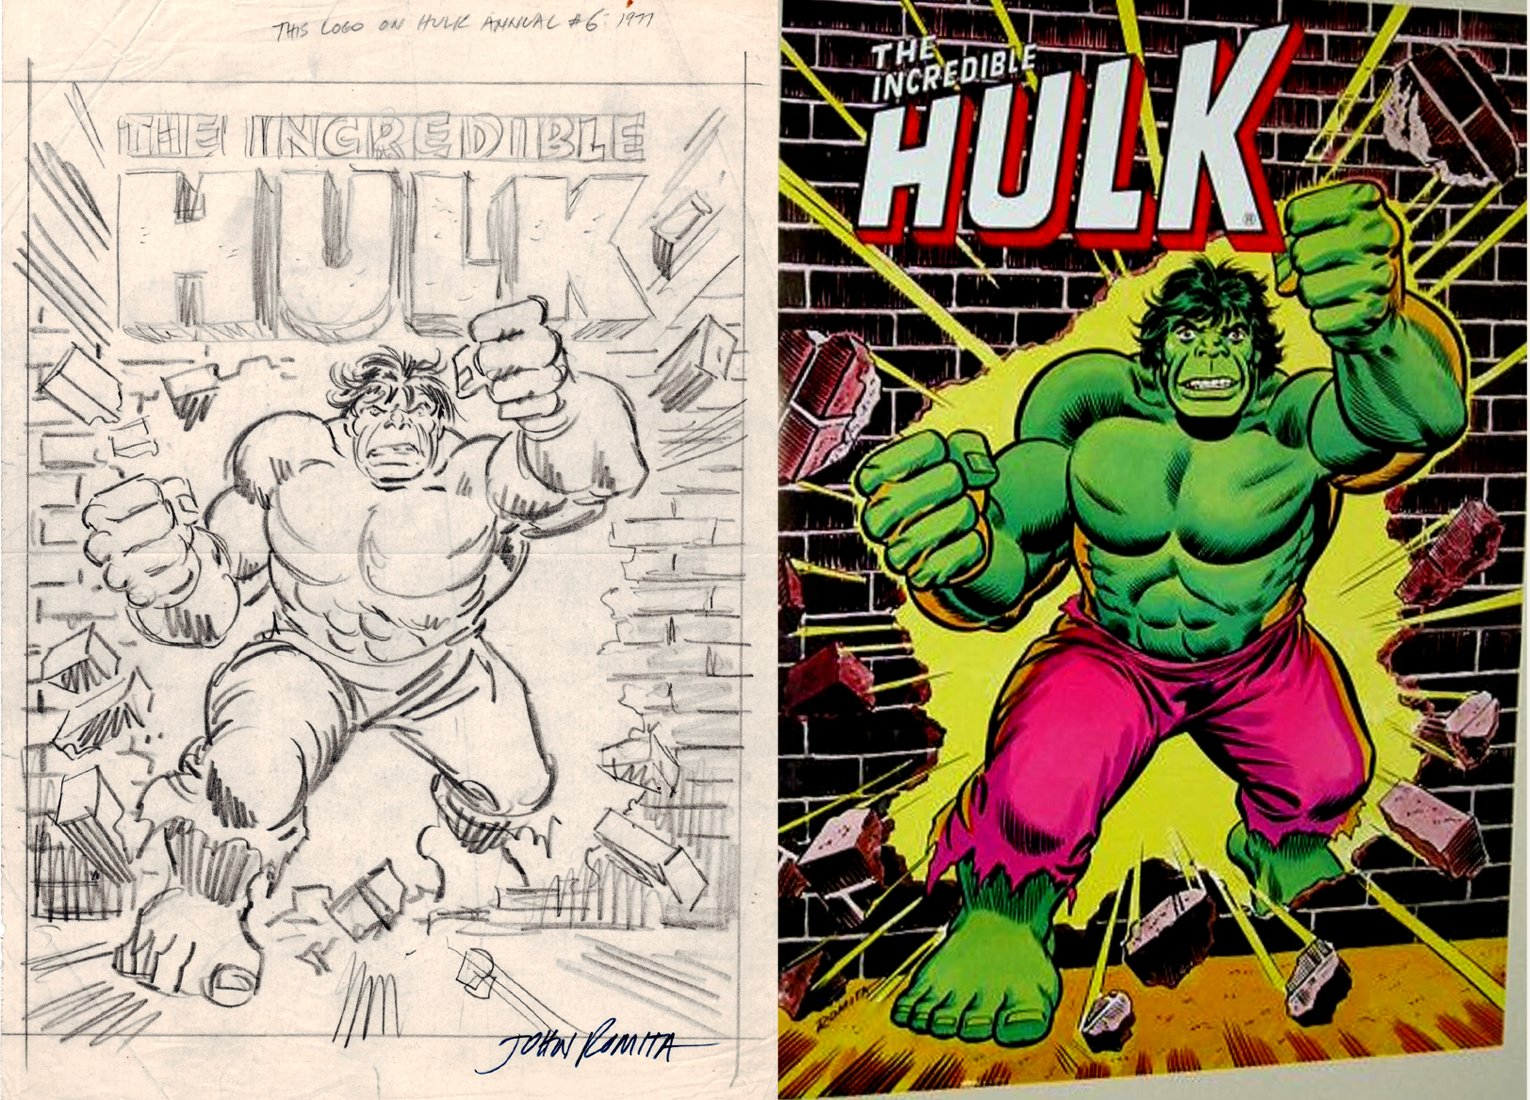 Incredible Hulk 1978 Poster Prelim (SOLD LIVE ON 'DUELING DEALERS OF COMIC ART' EPISODE #22 PODCAST ON 6-16-2021 (RE-WATCH THIS FUNNY ART SELLING SHOW HERE)